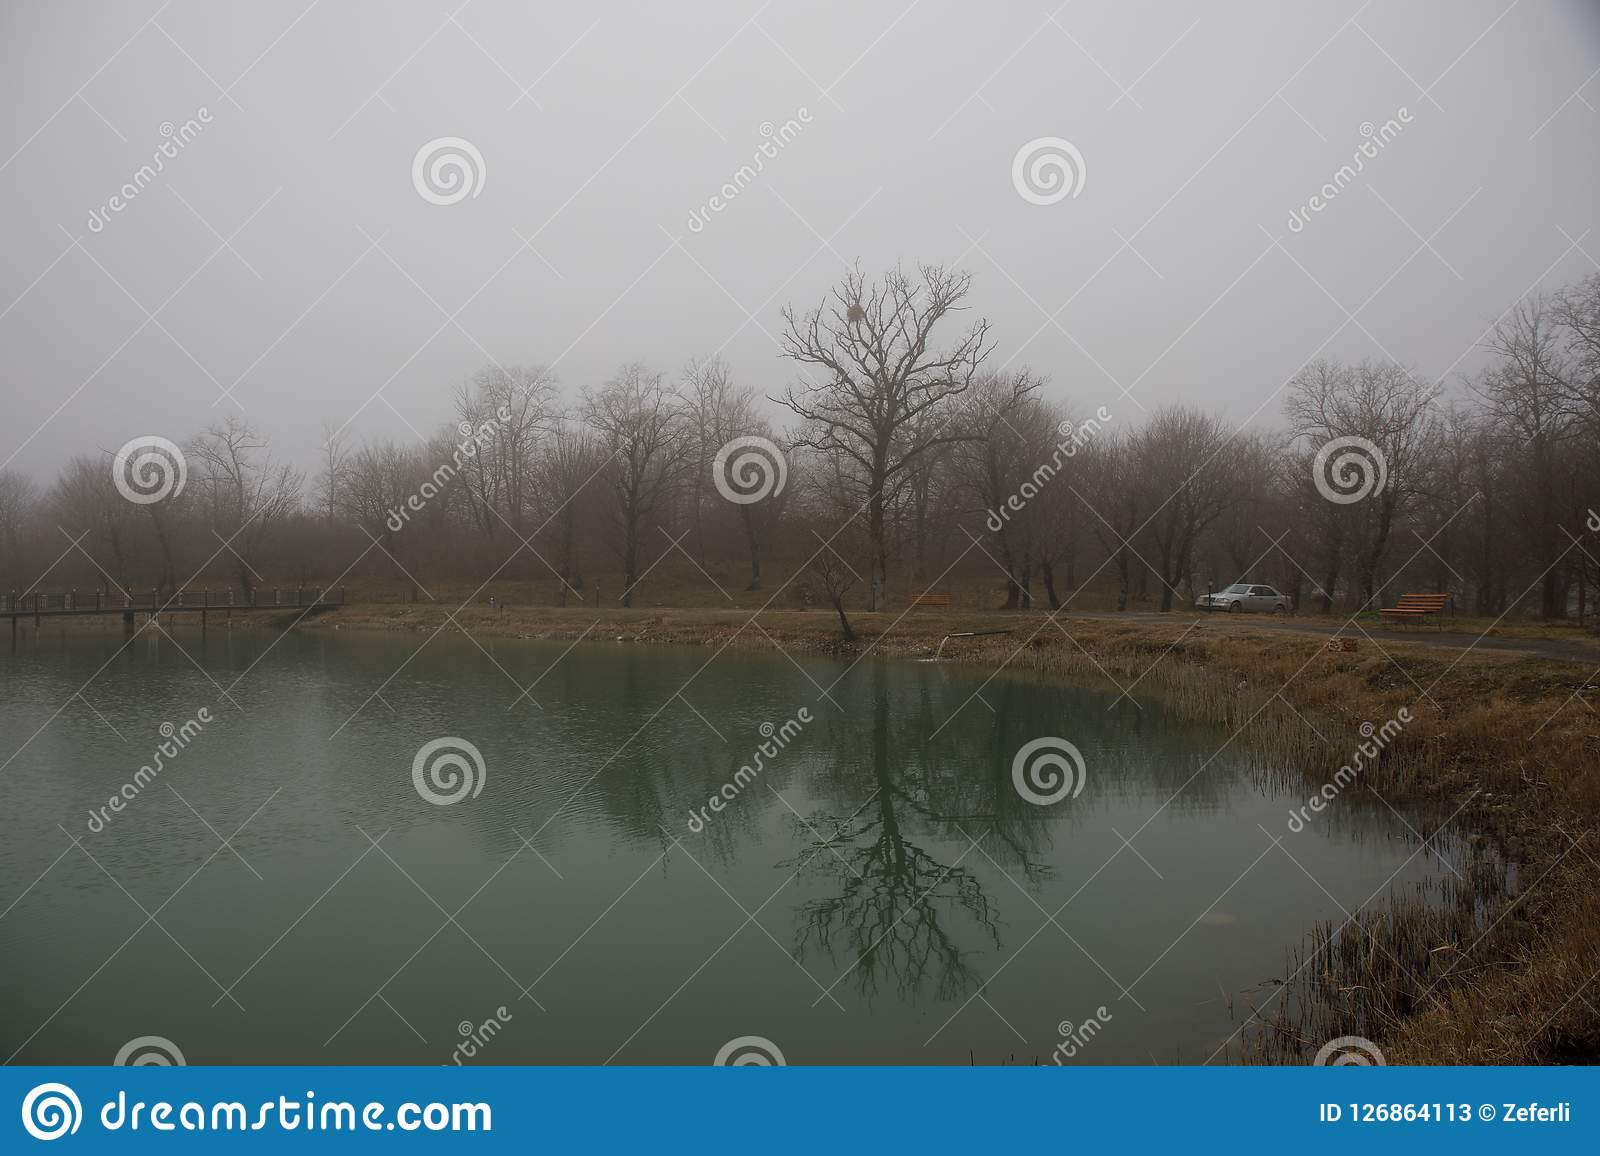 Amazing landscape of bridge reflect on surface water of lake, fog evaporate from pond make romantic scene or Beautiful bridge on l. Ake with trees at fog. Iron Stock Photos